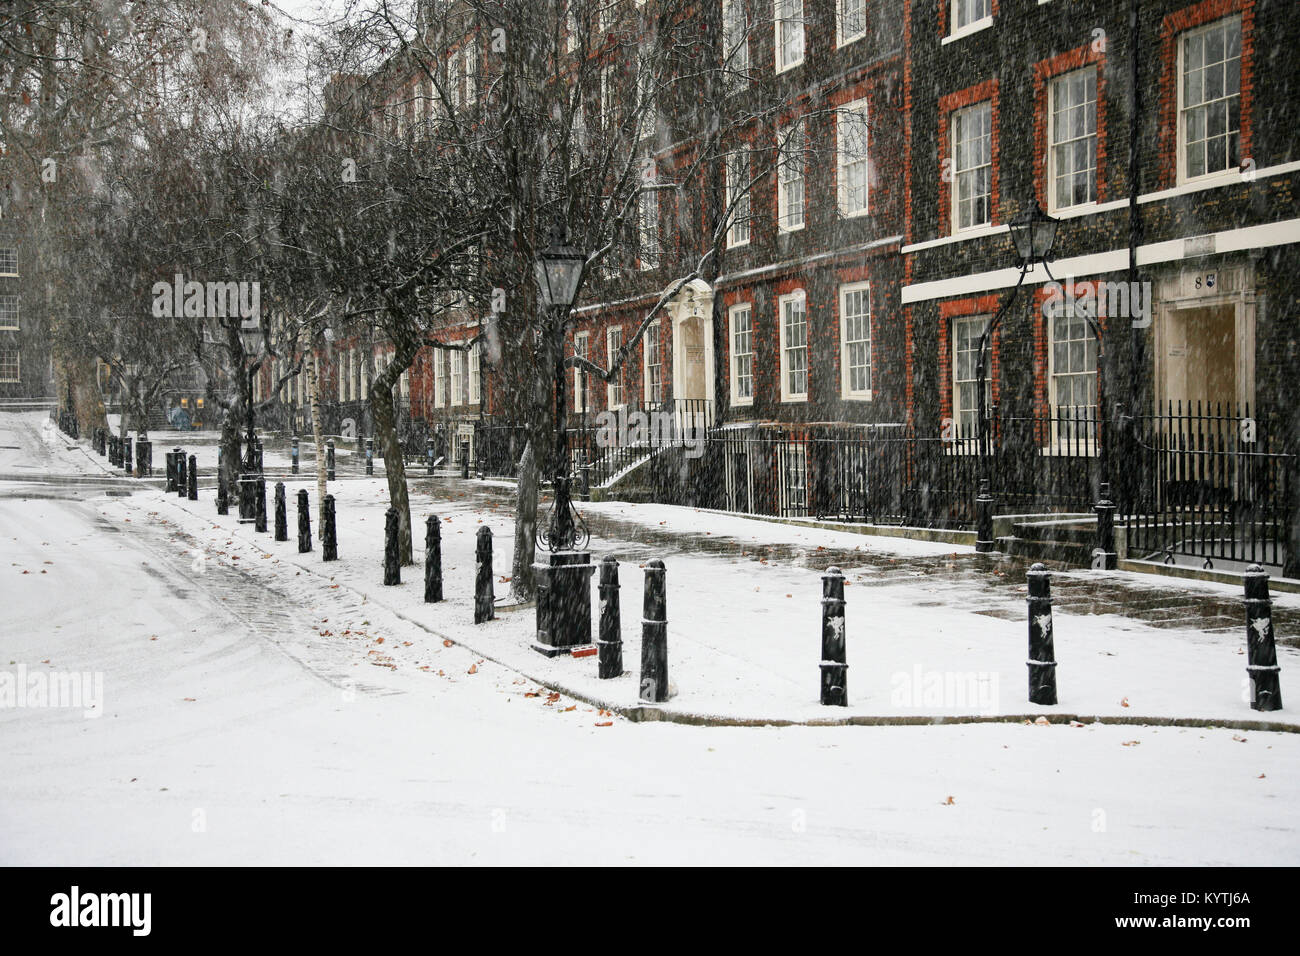 Snowing at Kings Bench Walk, Inner Temple London - Stock Image